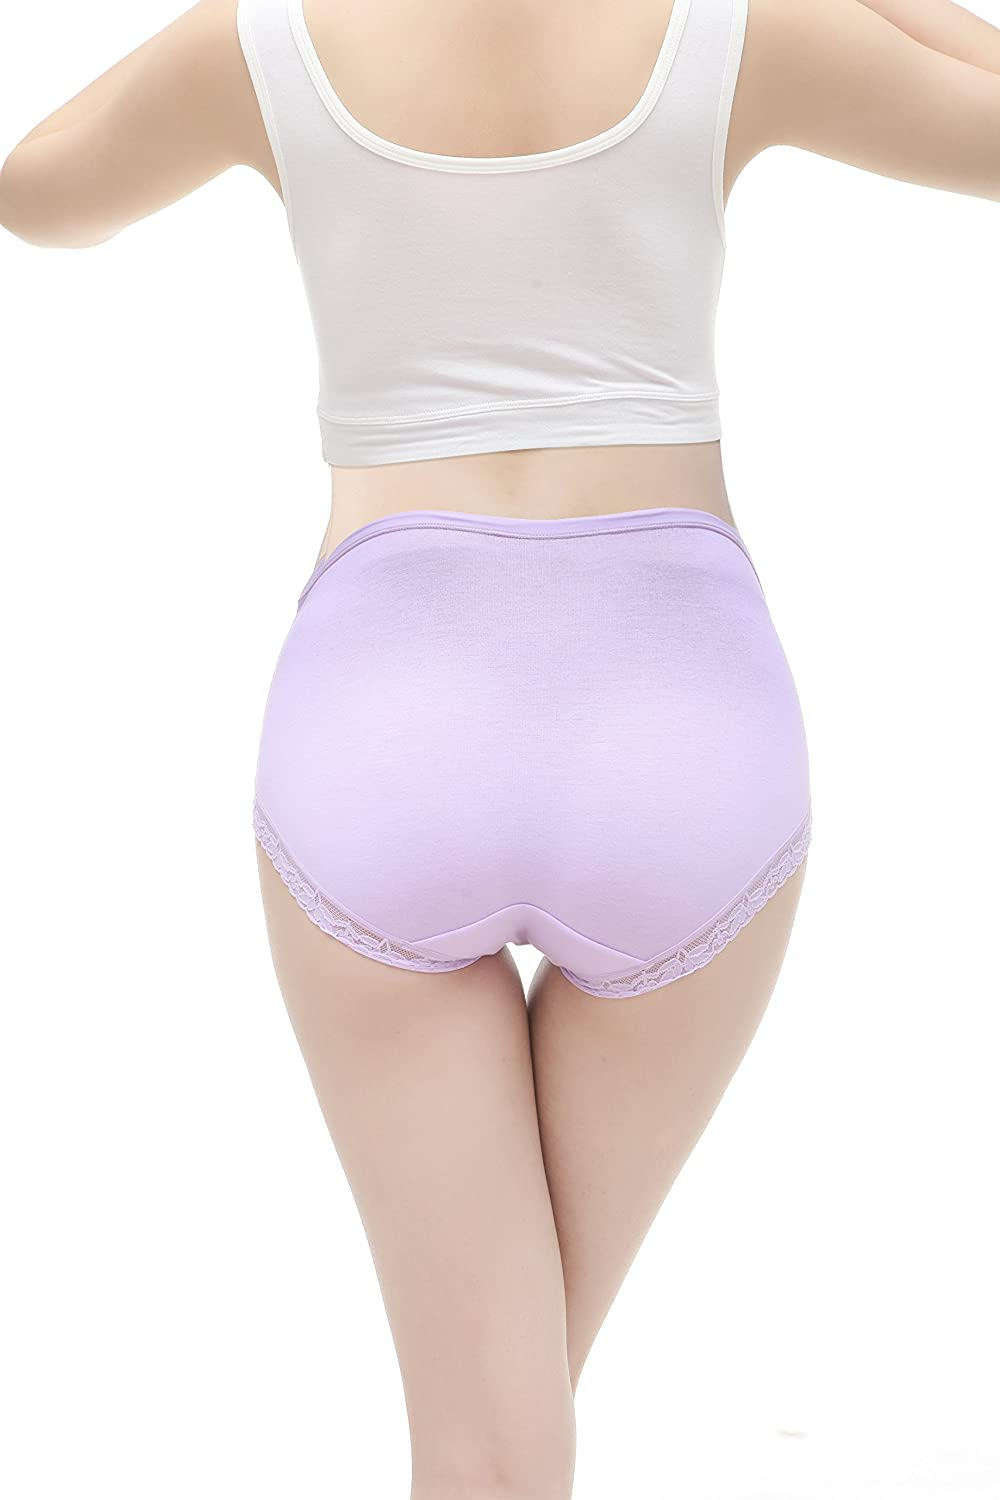 Womens Cotton Briefs Lace Pregnancy Underwear Pants Topwhere Maternity Panties Knickers